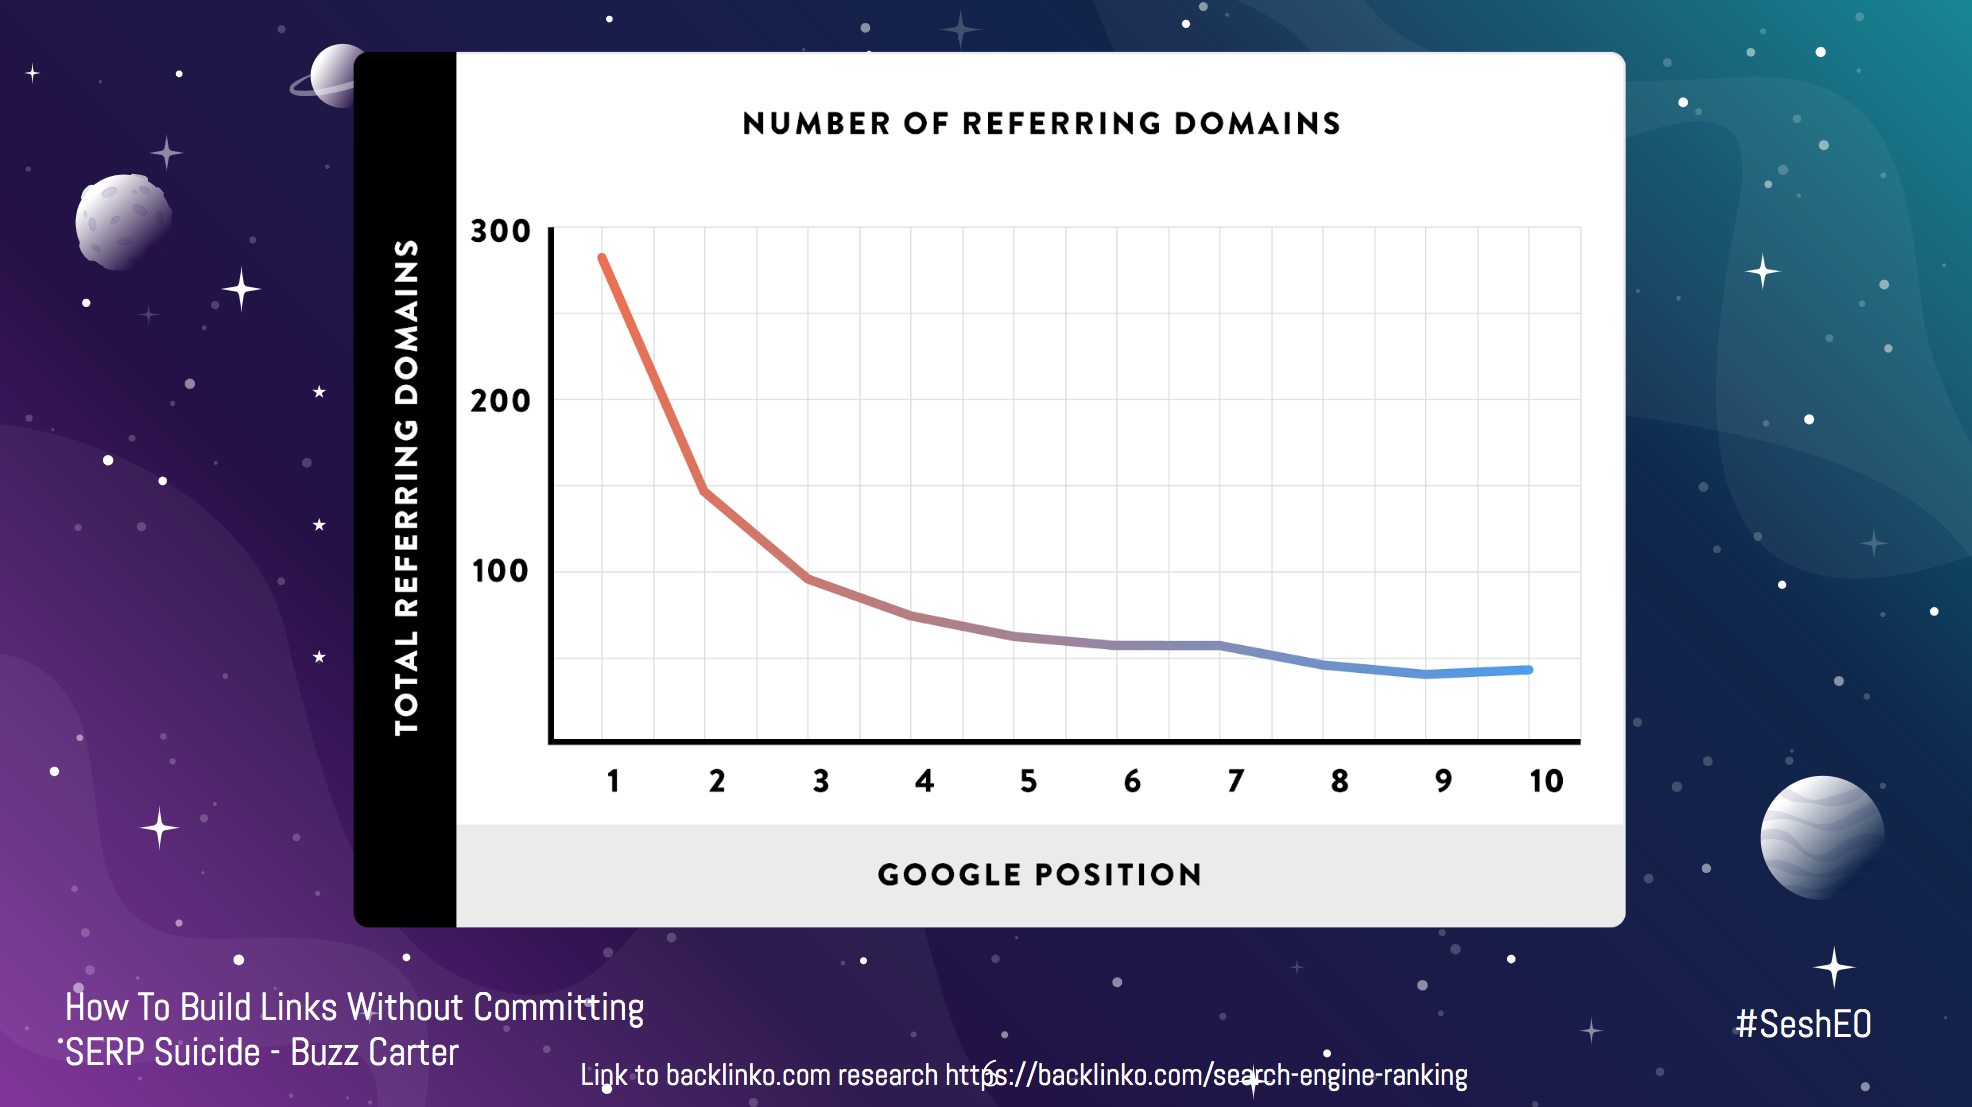 Graph showing increase in referring domains vs increase in rankings